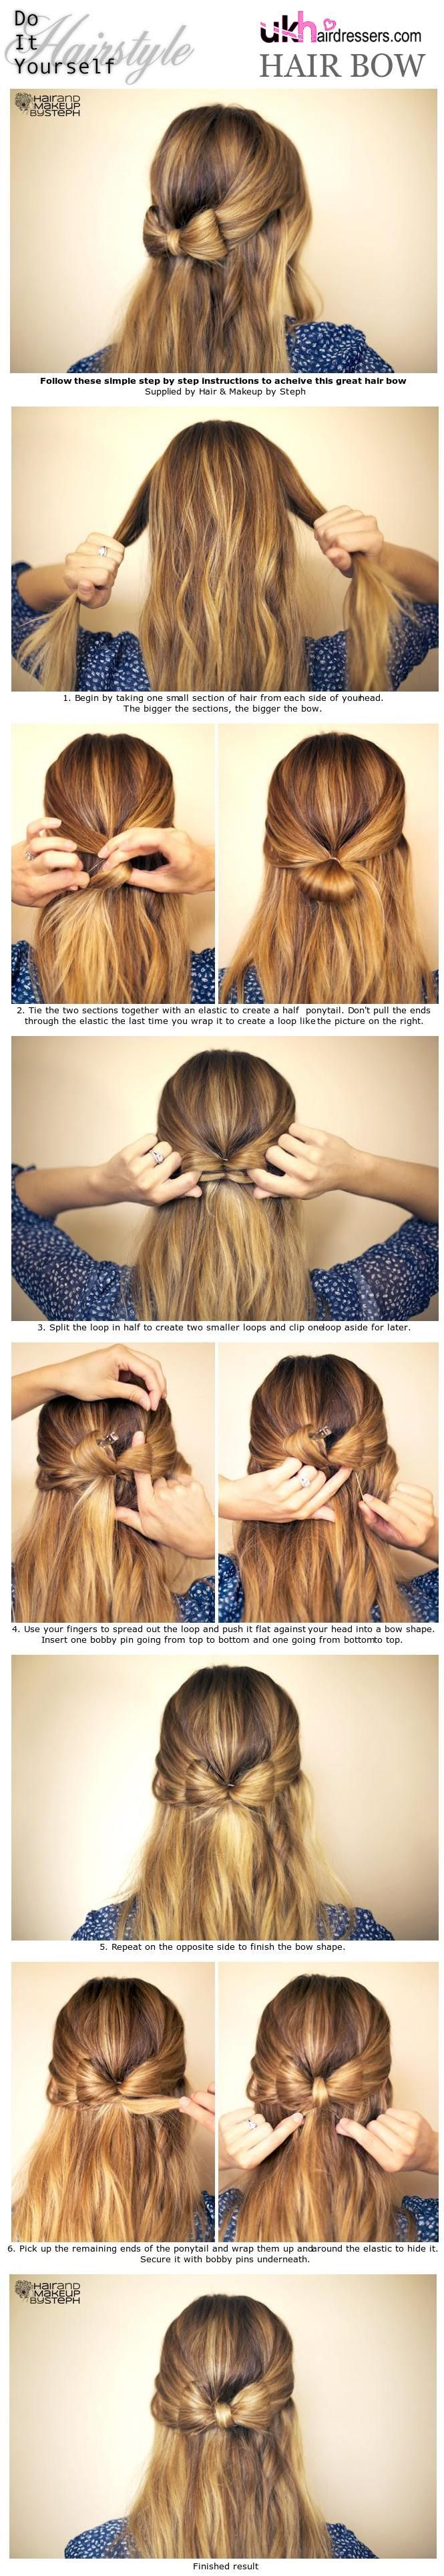 Best Hairstyle Tutorials For Everyday - http://1pic4u.com/2015/09/07/best-hairstyle-tutorials-for-everyday/